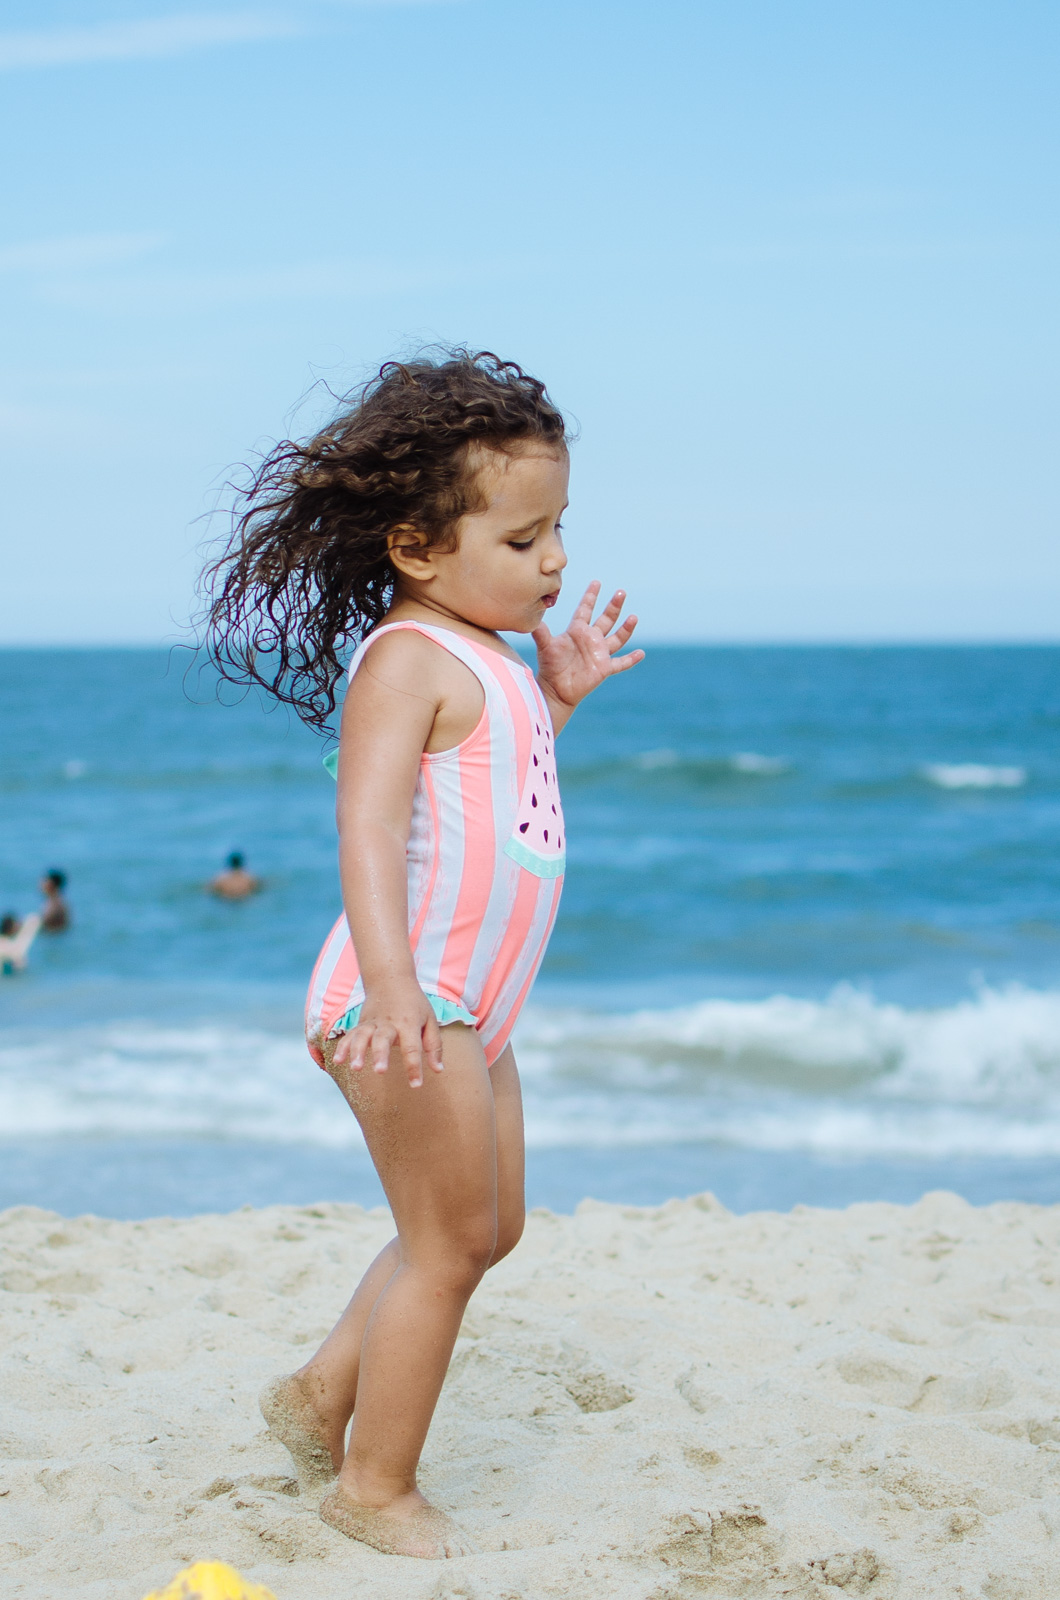 things toddlers say - silly sayings from my toddler   bylaurenm.com